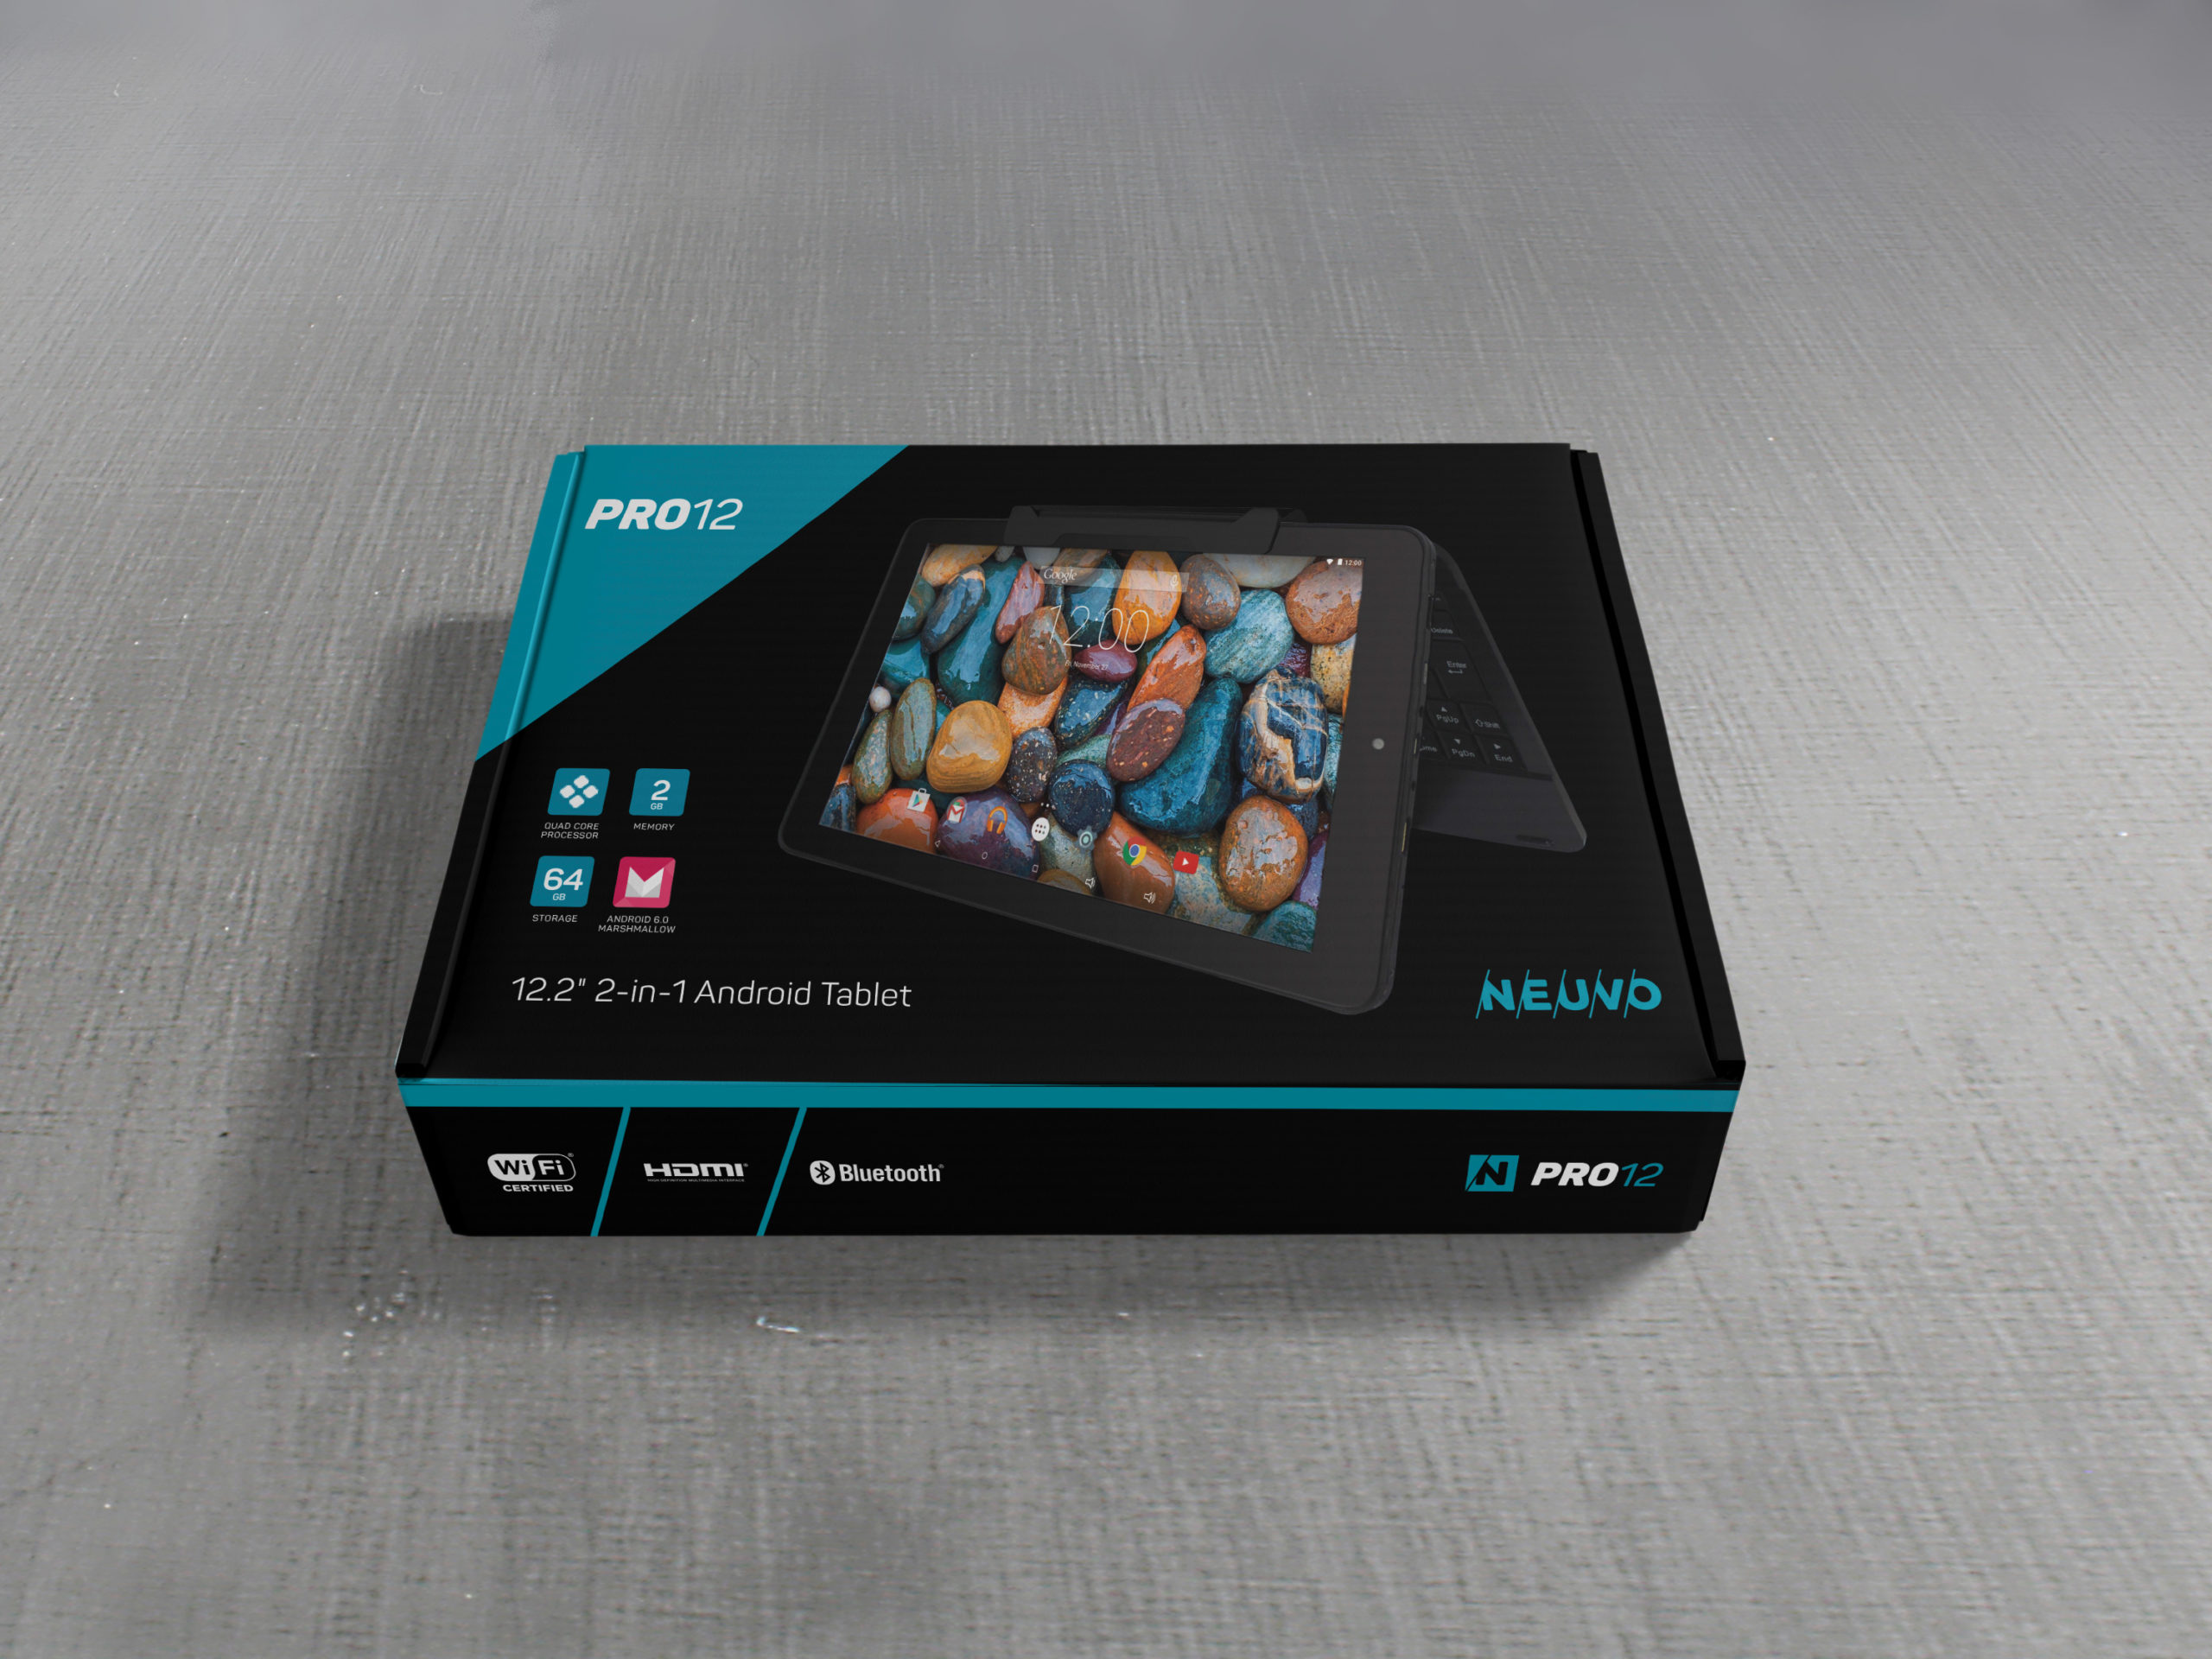 Neuvo packaging